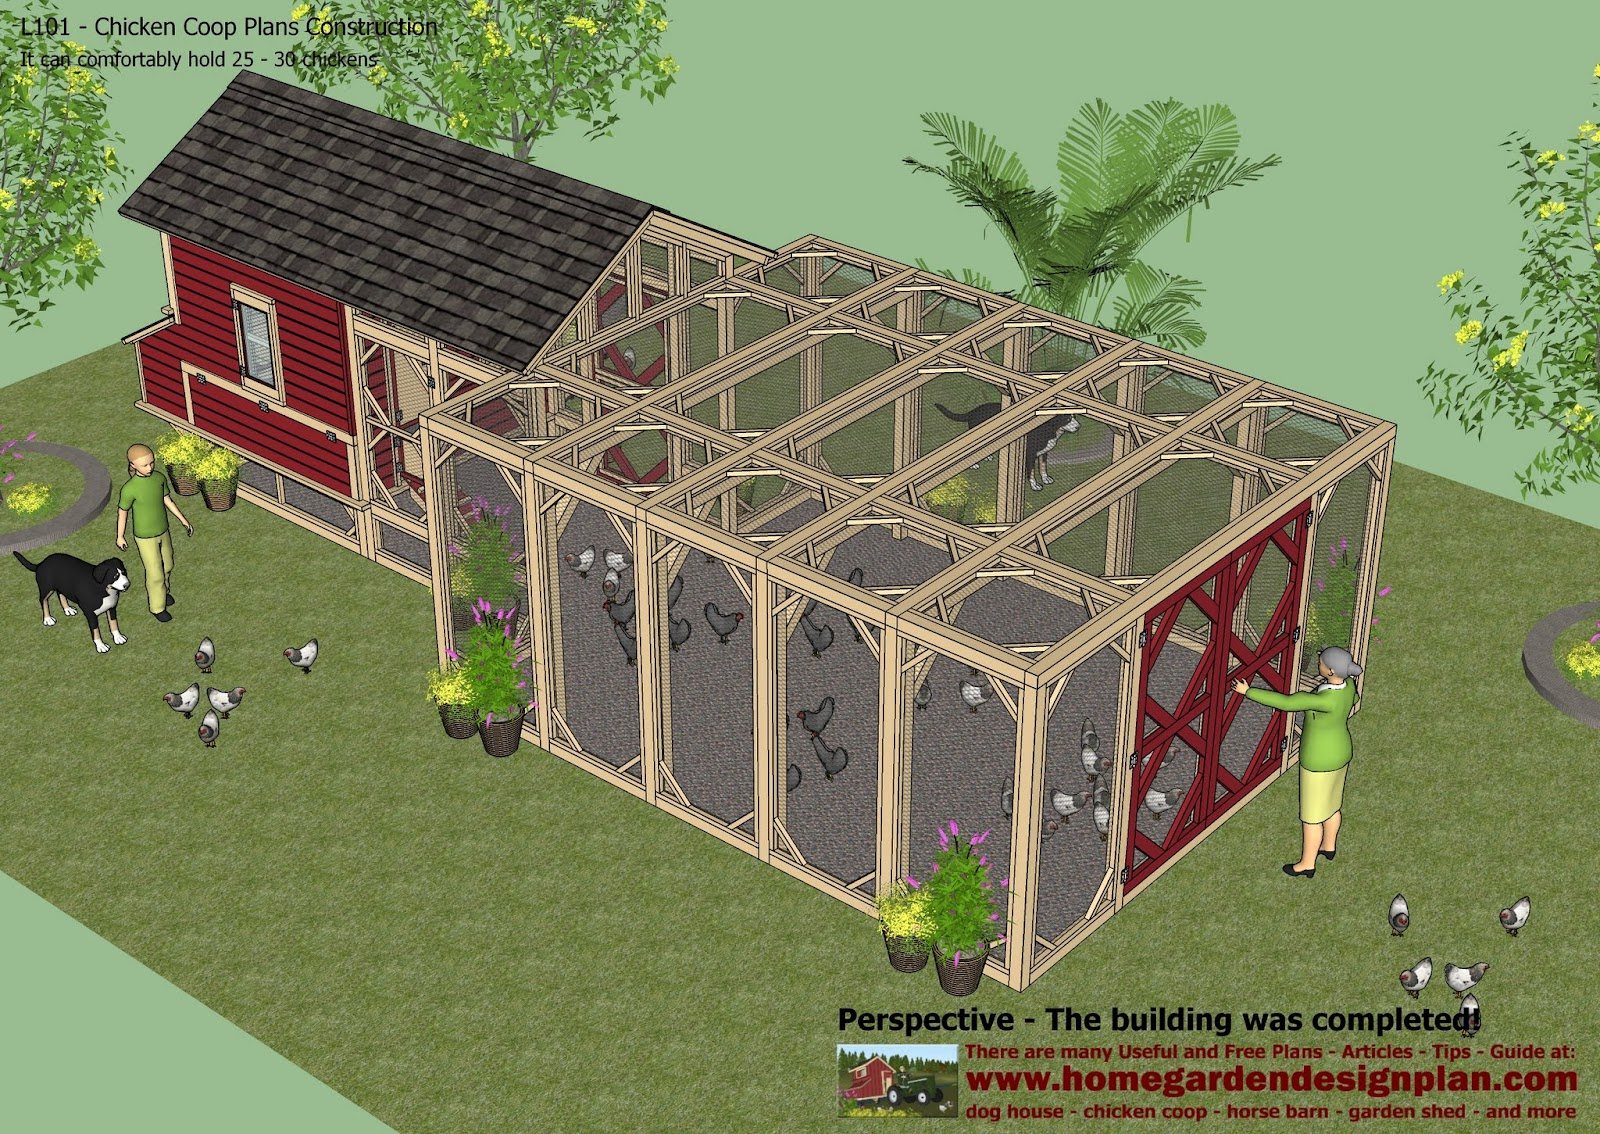 Home garden plans home garden plans l101 chicken coop for Home garden design